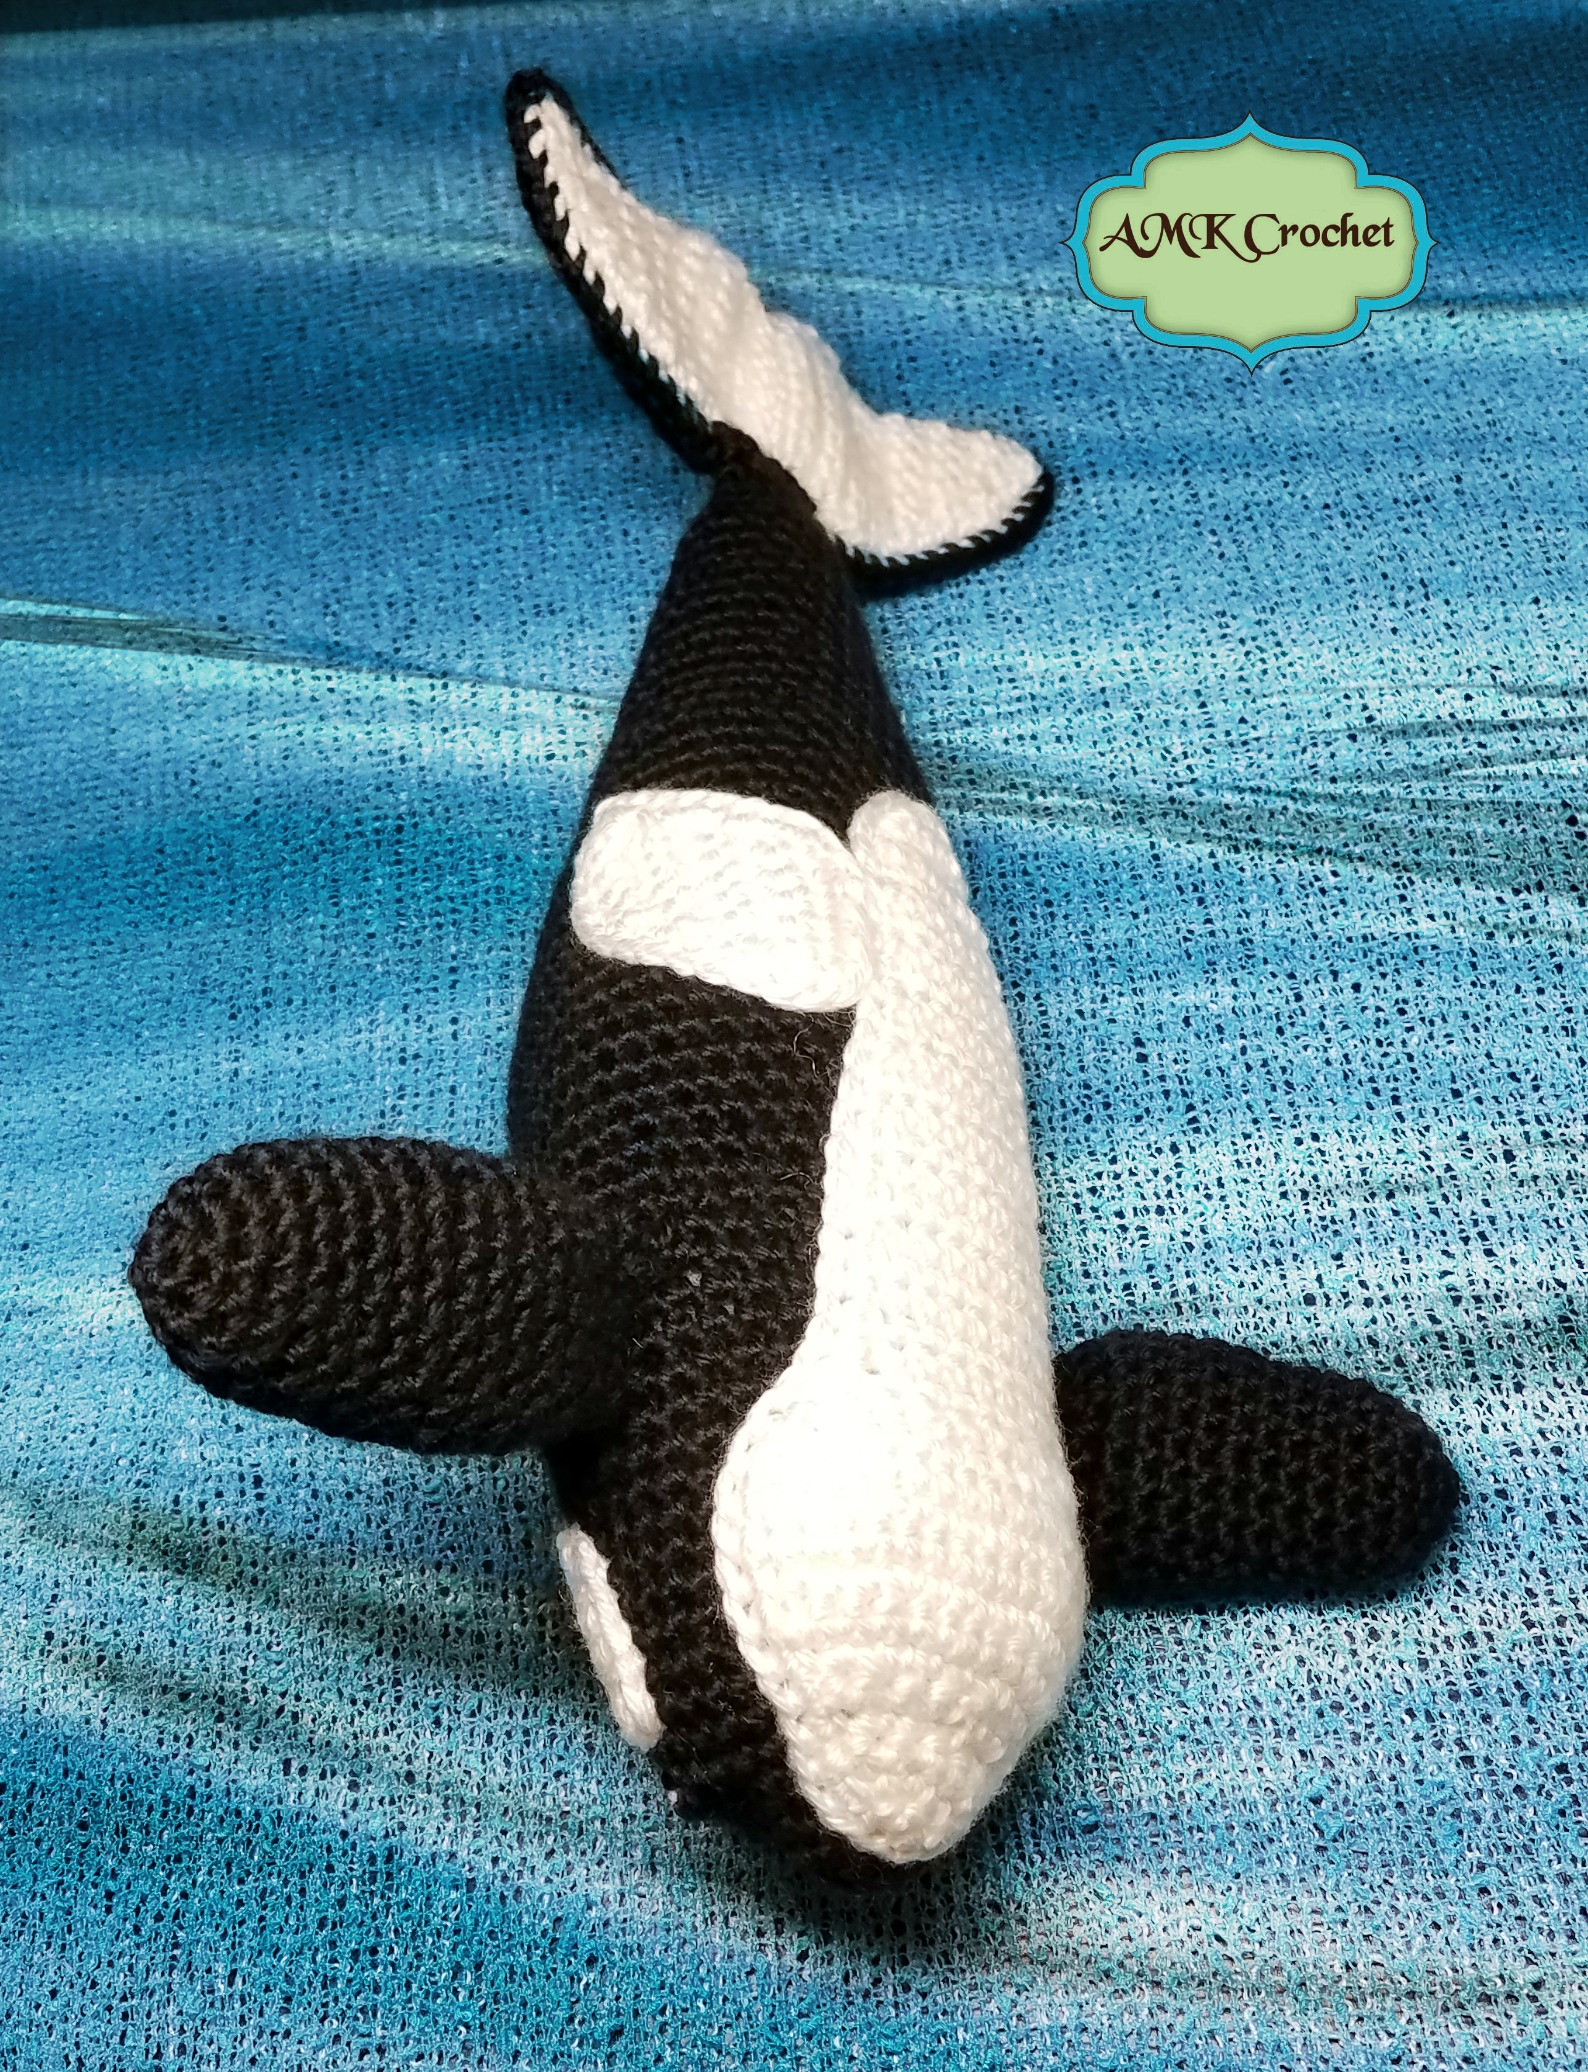 Crochet Orca Killer Whale Plush Toy Pattern Amk Crochet